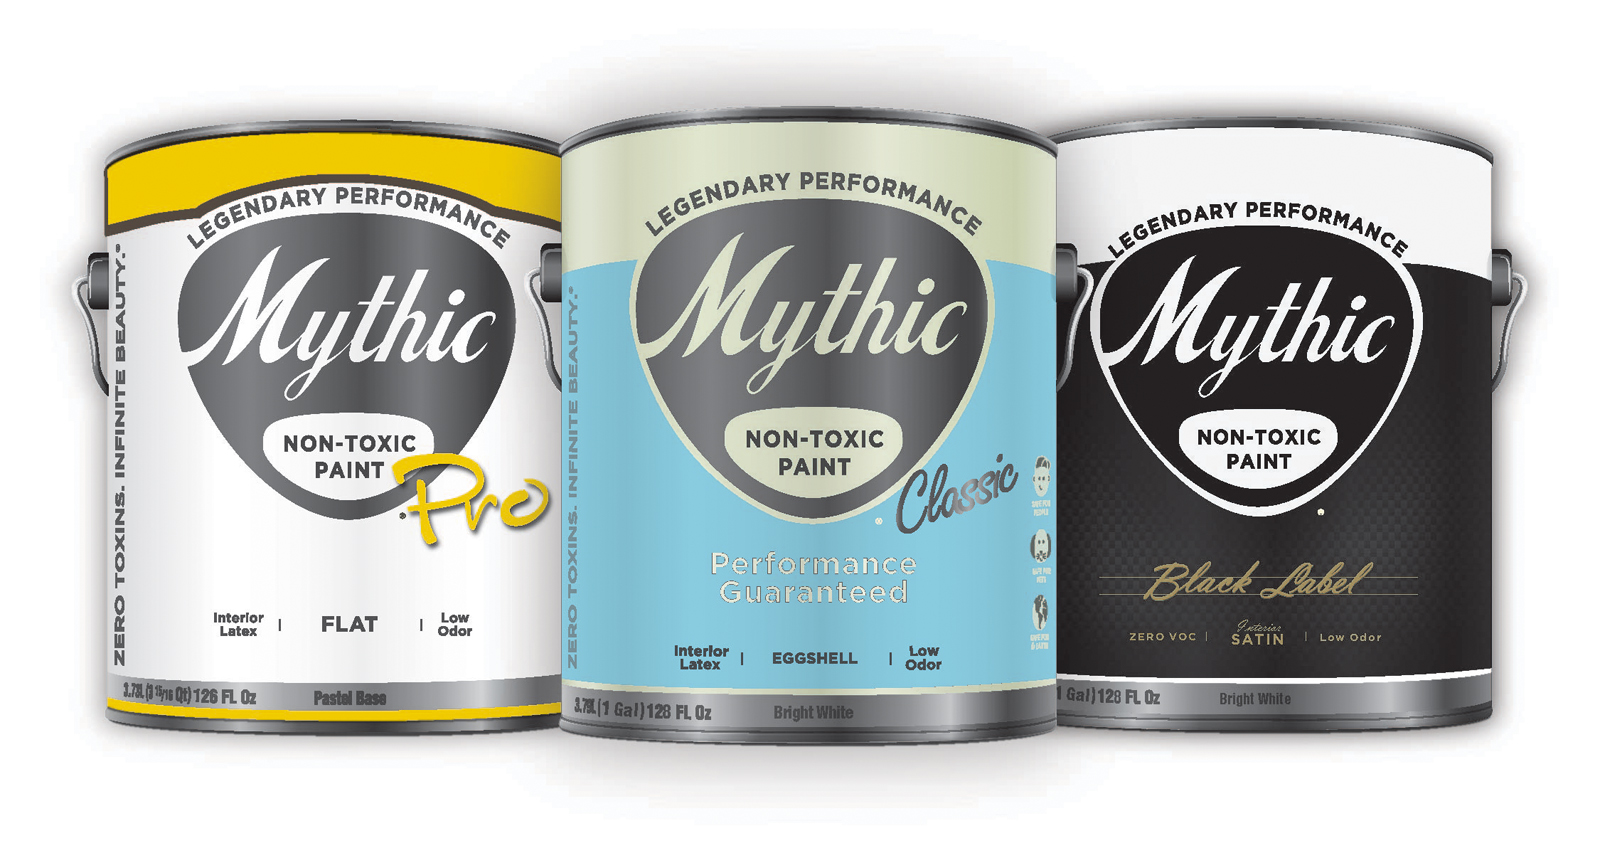 Mythic's cans have an old-timey appeal that is hard to turn away from. It's non-toxic, zero VOC cred only sweetens the deal.